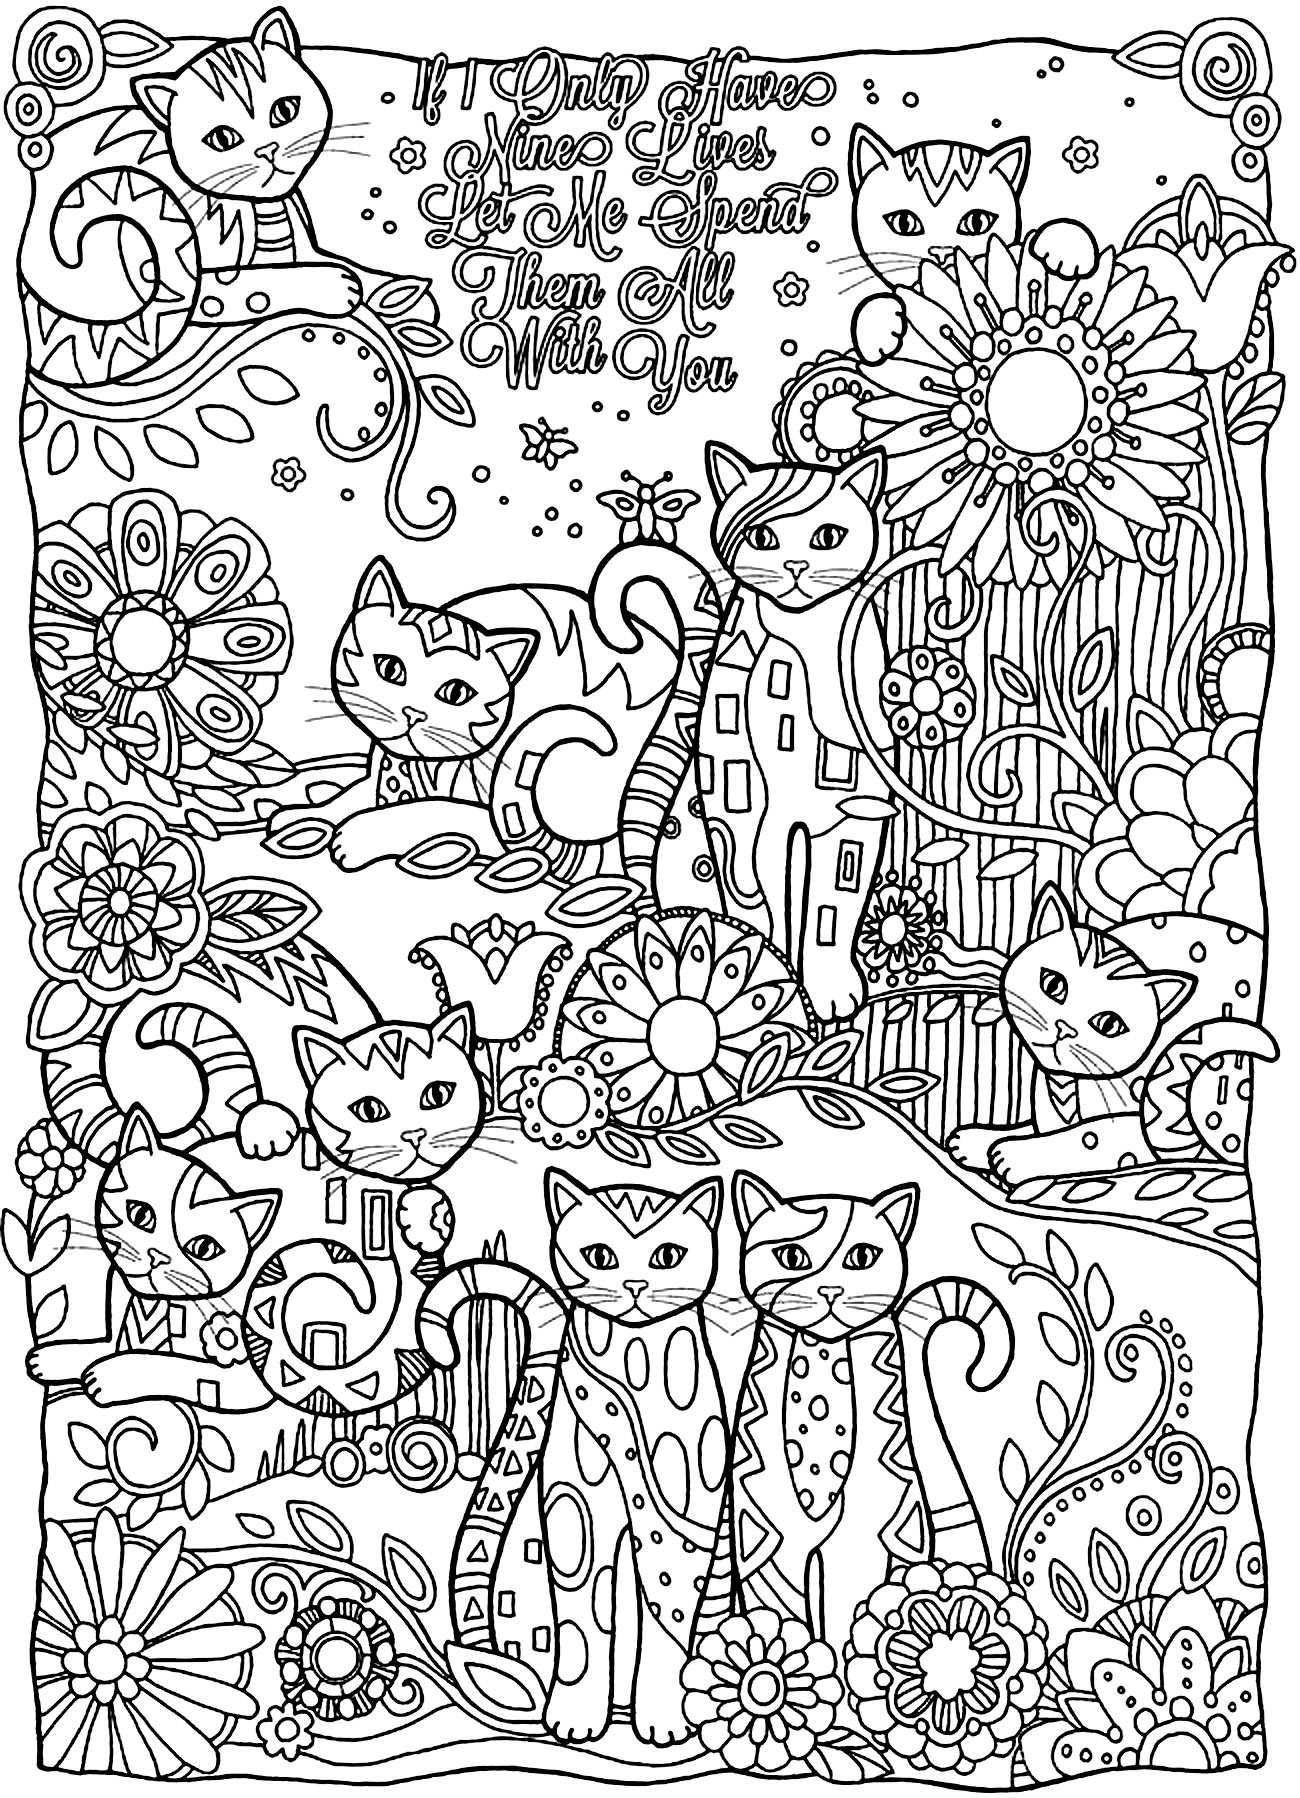 cool printable coloring pages for adults coloring pages detailed coloring pages for adults for adults pages cool coloring printable